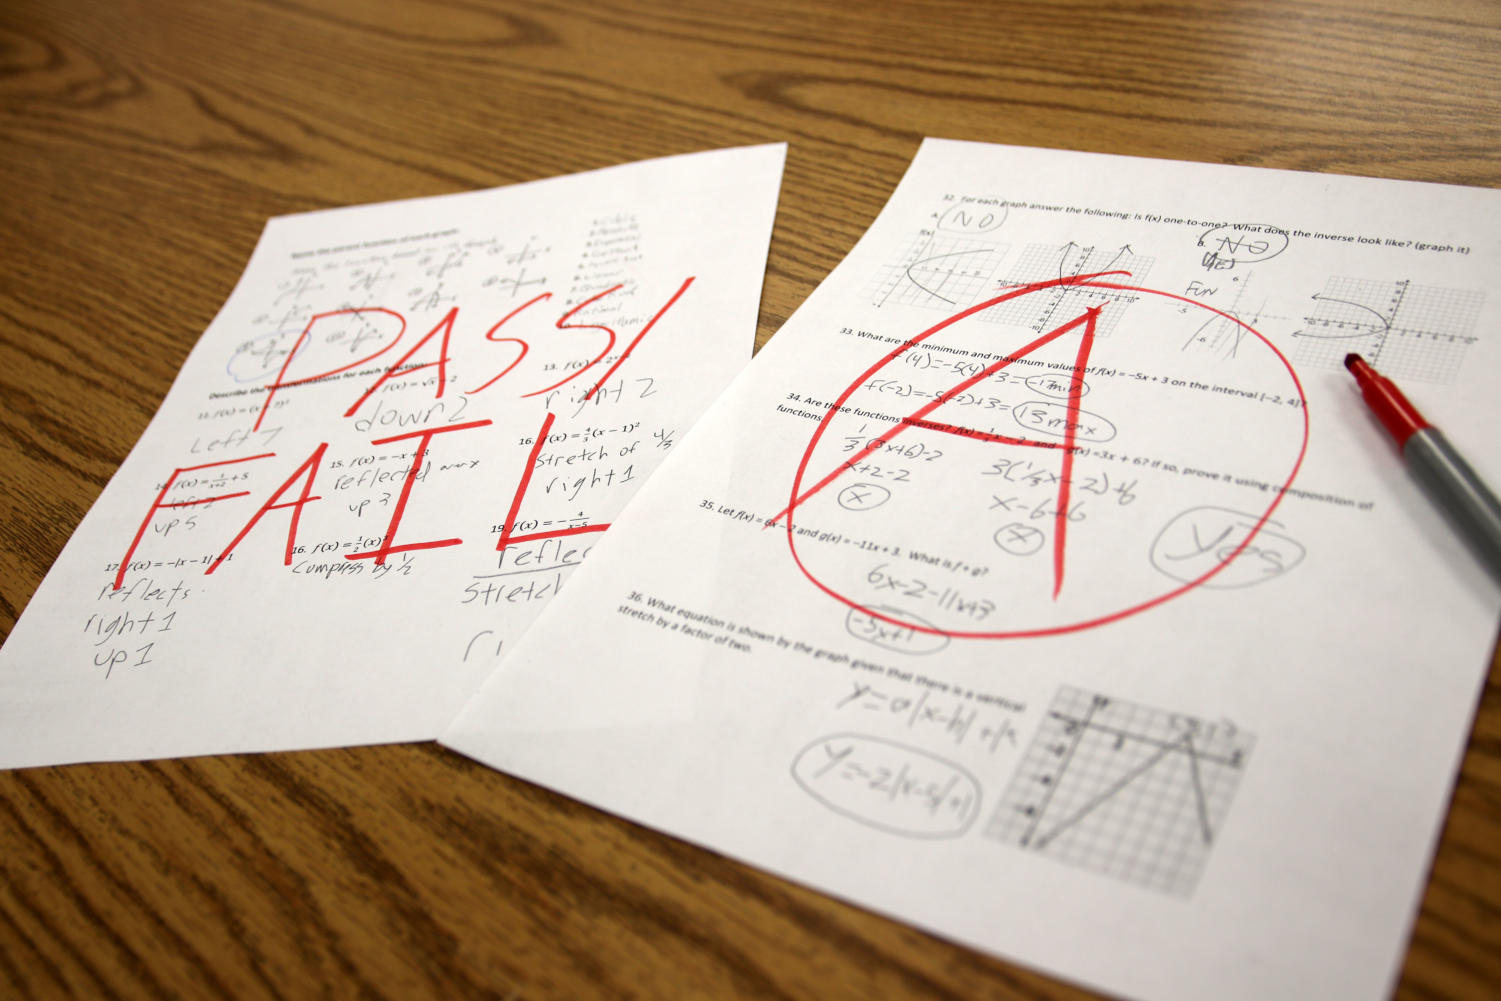 Opinion: Grading a grading system